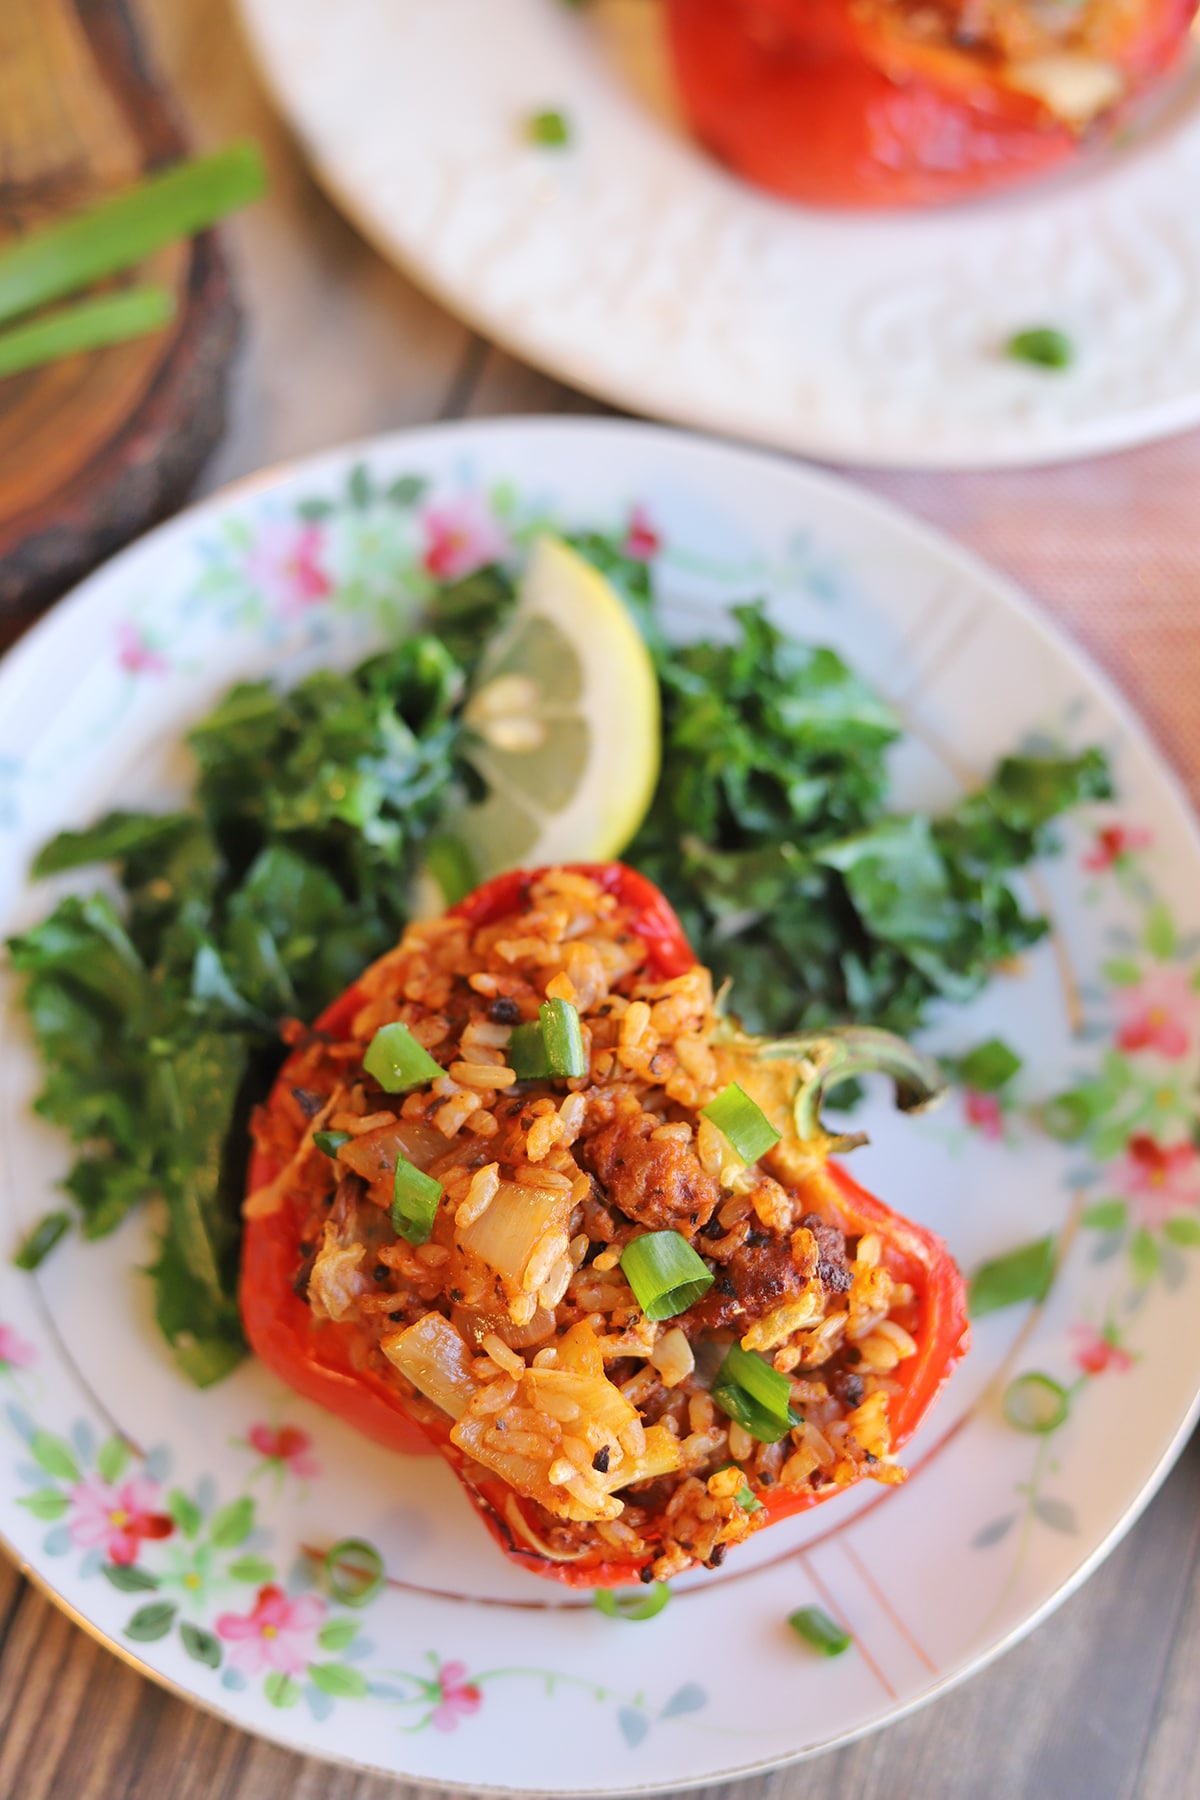 Stuffed bell pepper half on plate with sauteed kale.